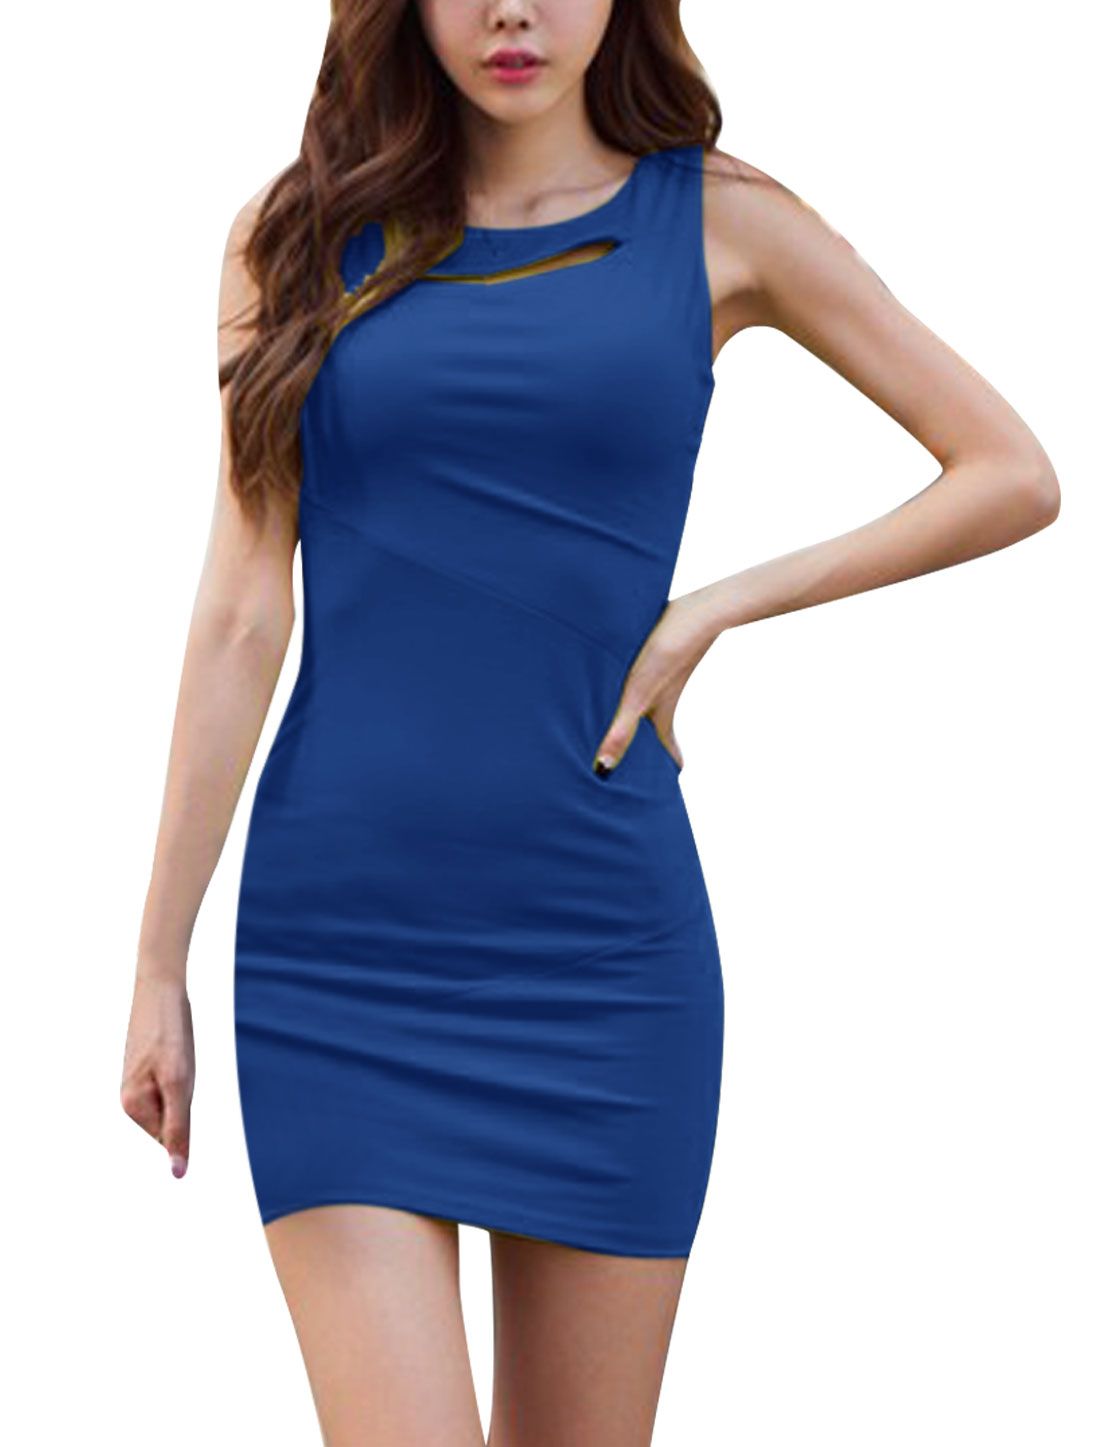 Ladies NEW Round Neck Sleeveless Cutout Front Detail Royalblue Mini Dress XS